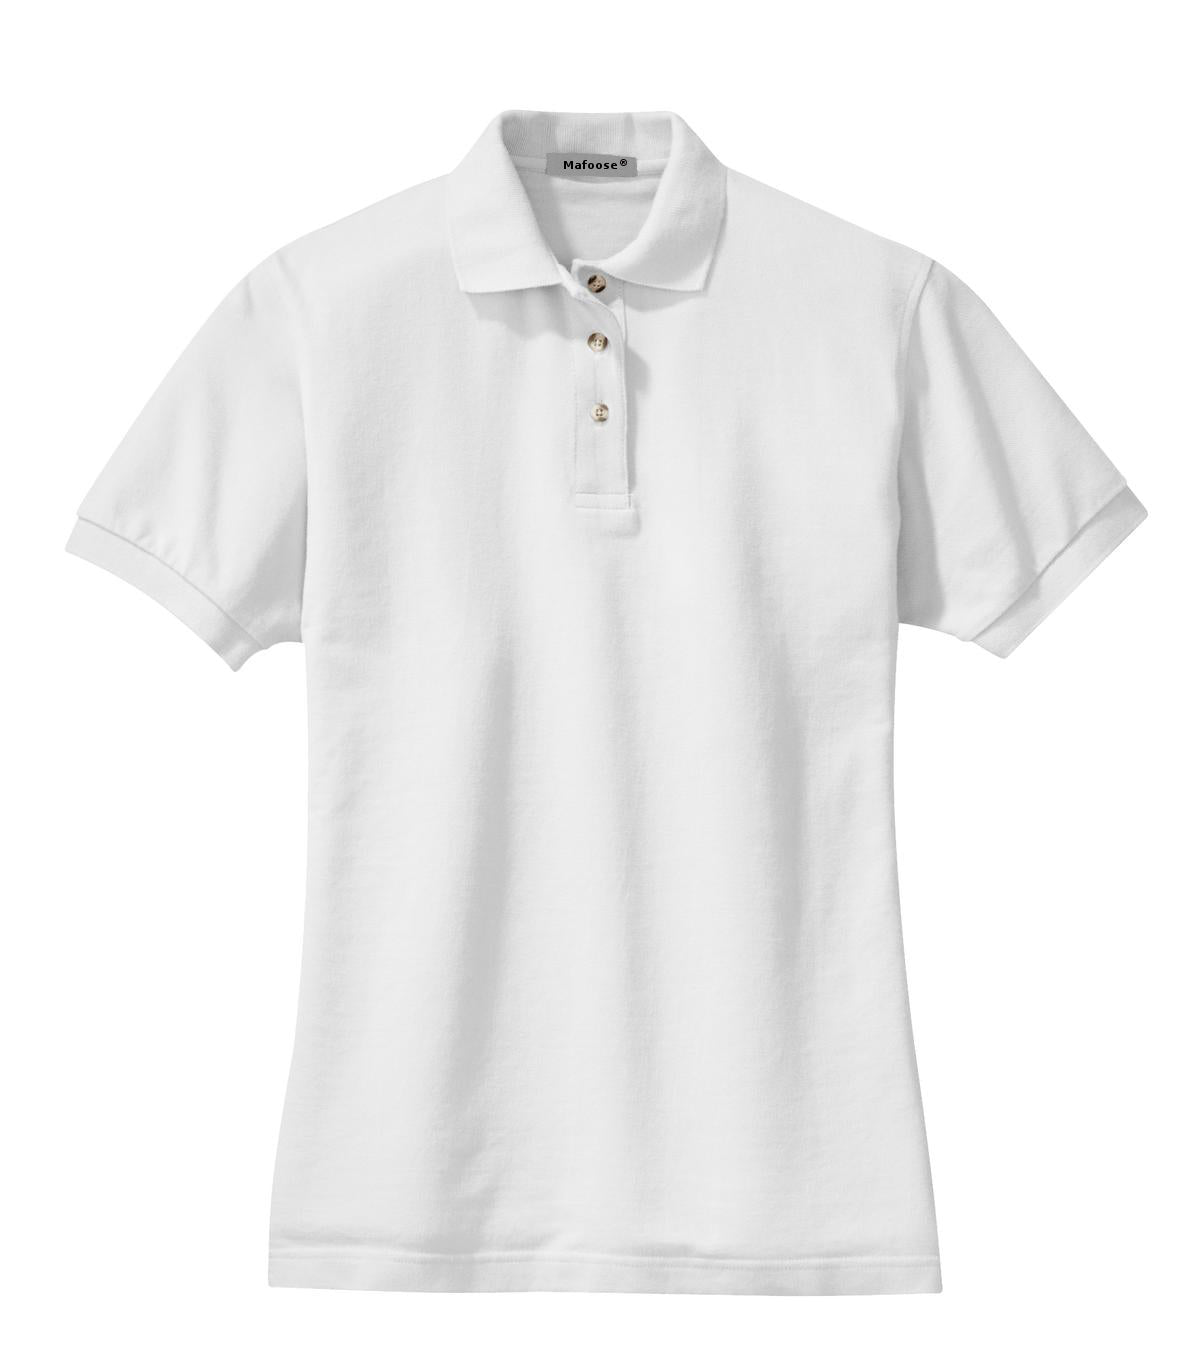 Mafoose Women's Heavyweight Cotton Pique Polo Shirt White-Front